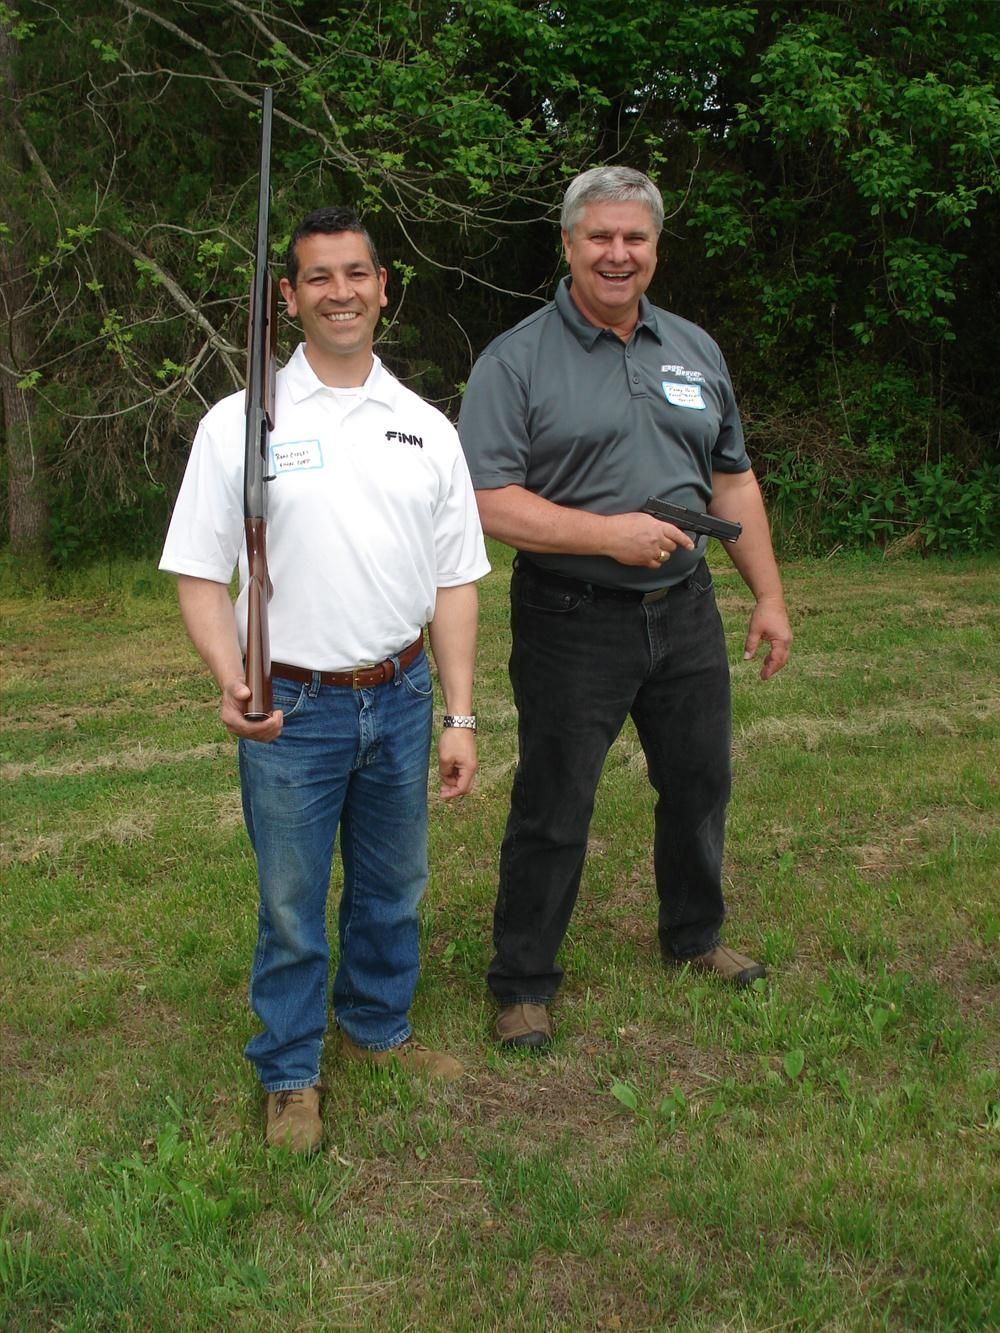 Ron Ciolfi (L) of Finn uses his Remington 1100 12 gauge, while Randy Hall of Eager Beaver Trailers uses his Glock model 22, a 40 caliber pistol.